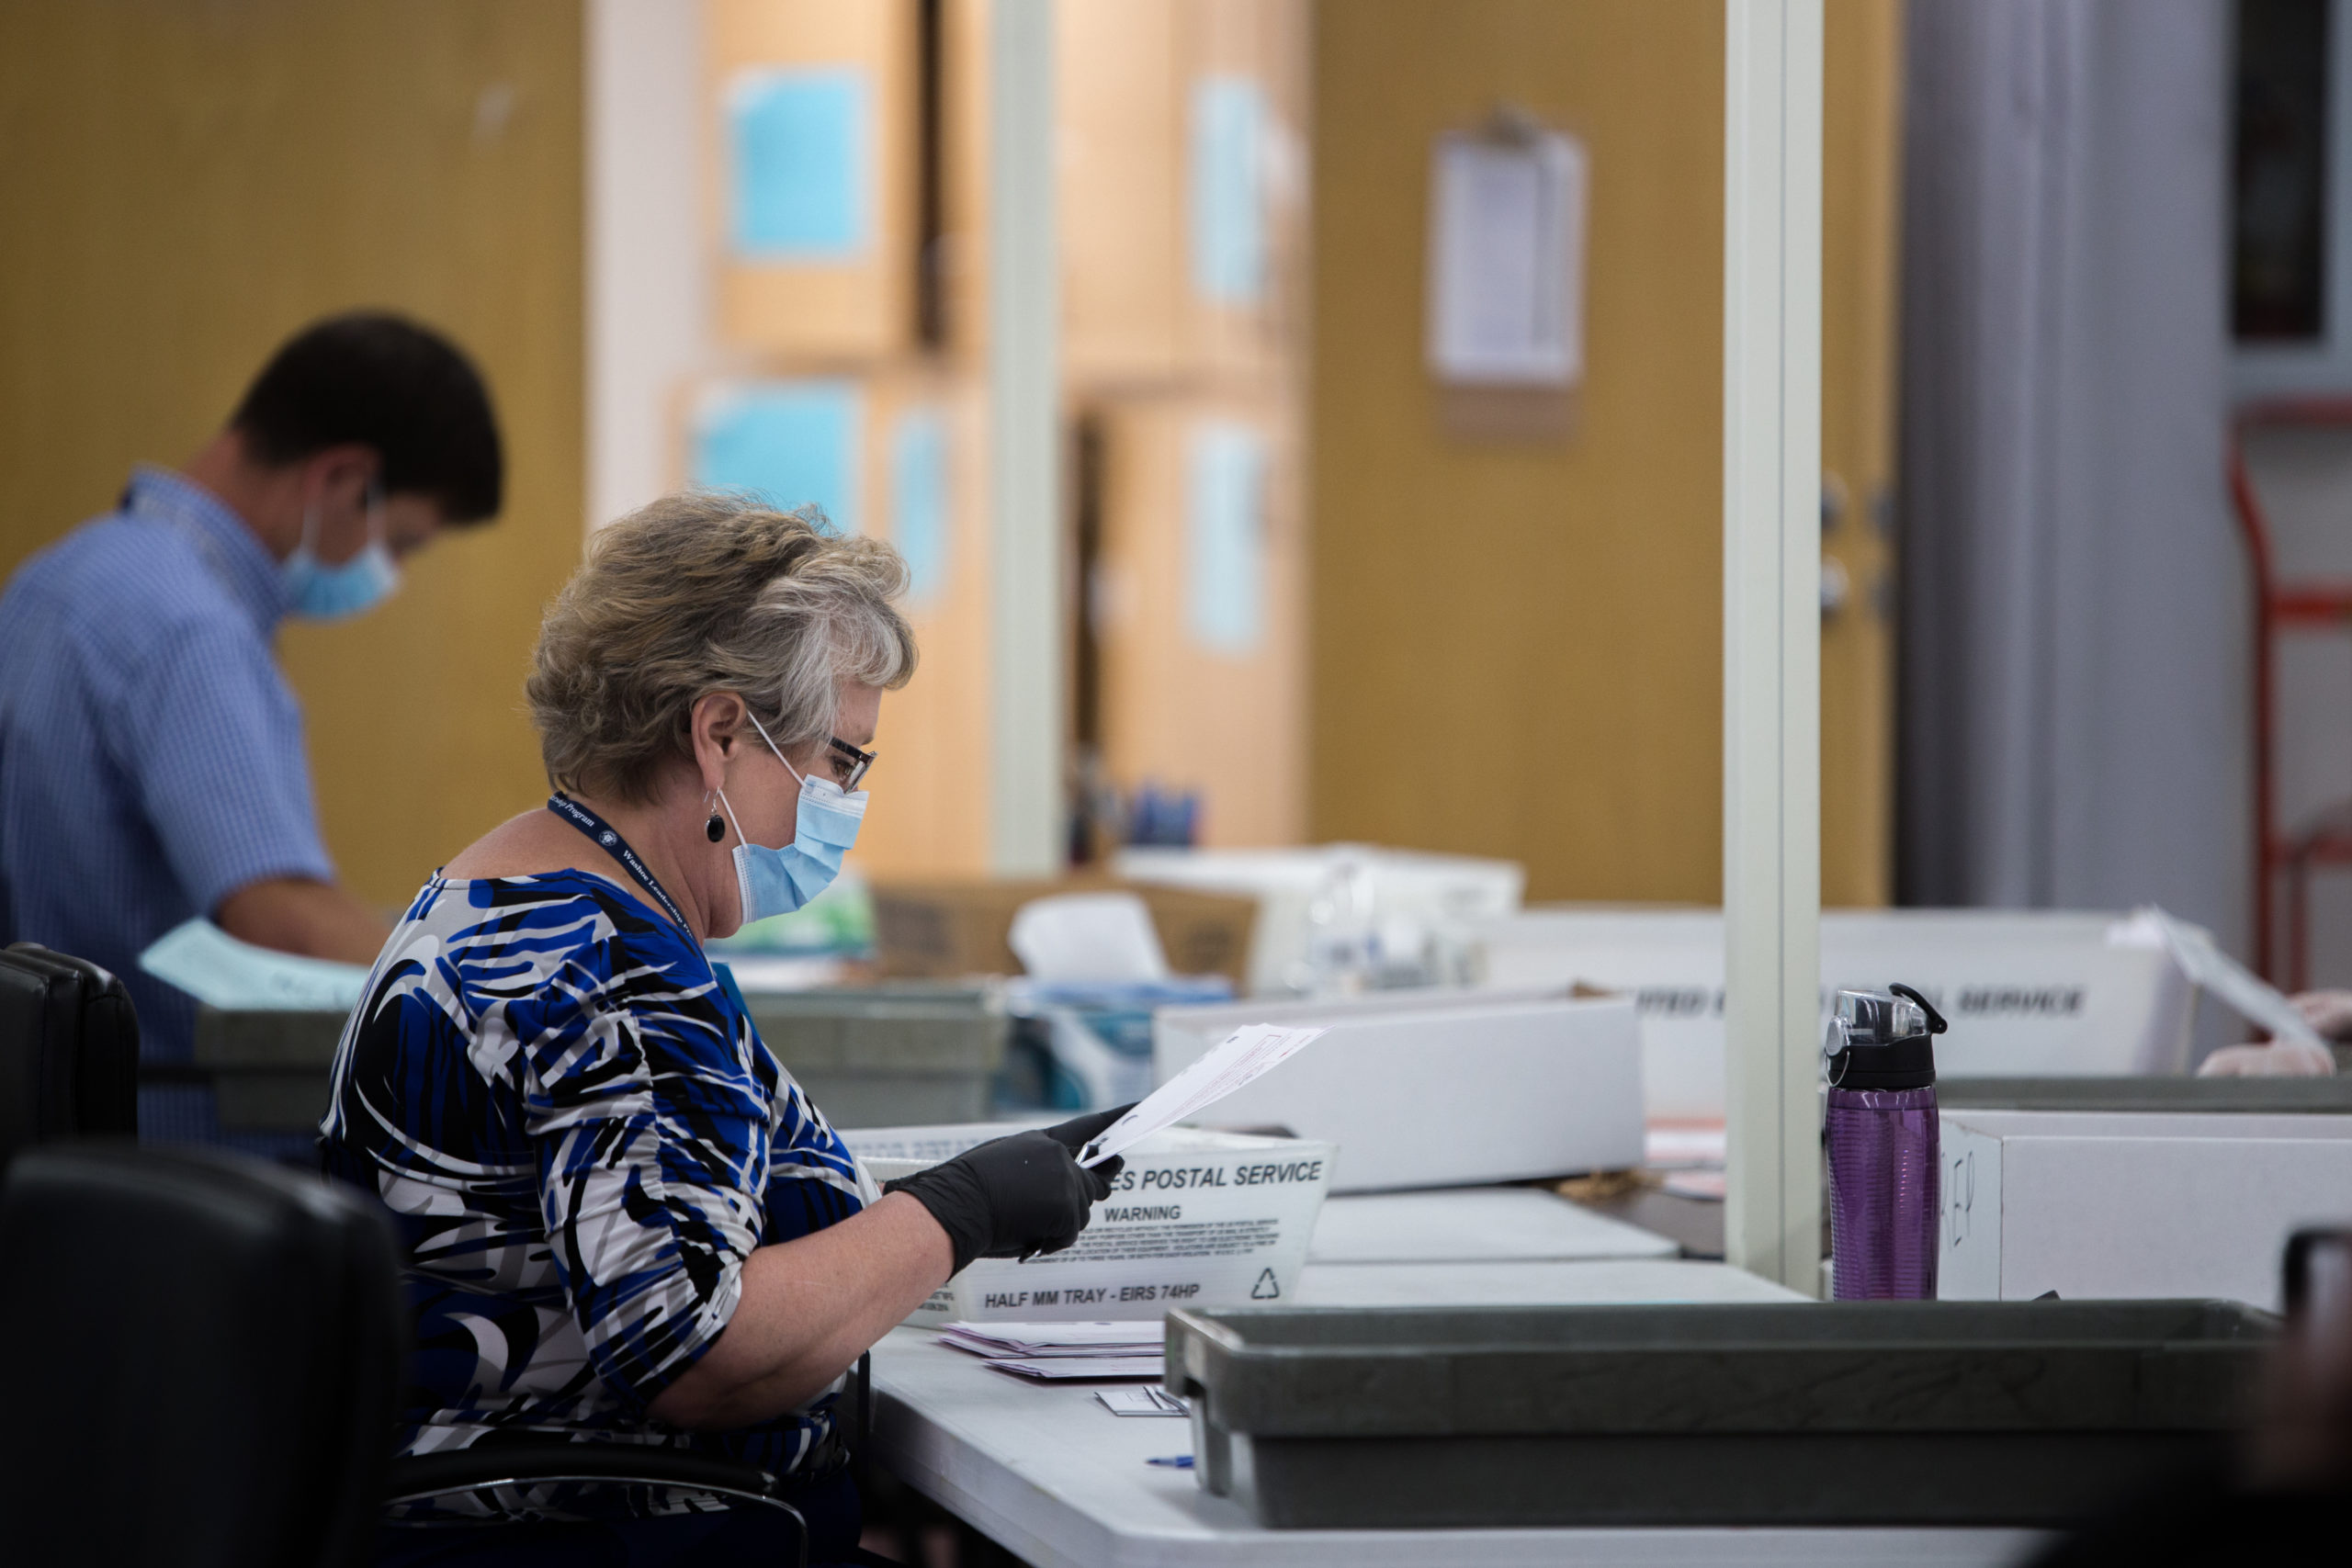 Poll Workers During 2020 Election (not representative of poll workers in news story) - Trevor Bexon - Shutterstock